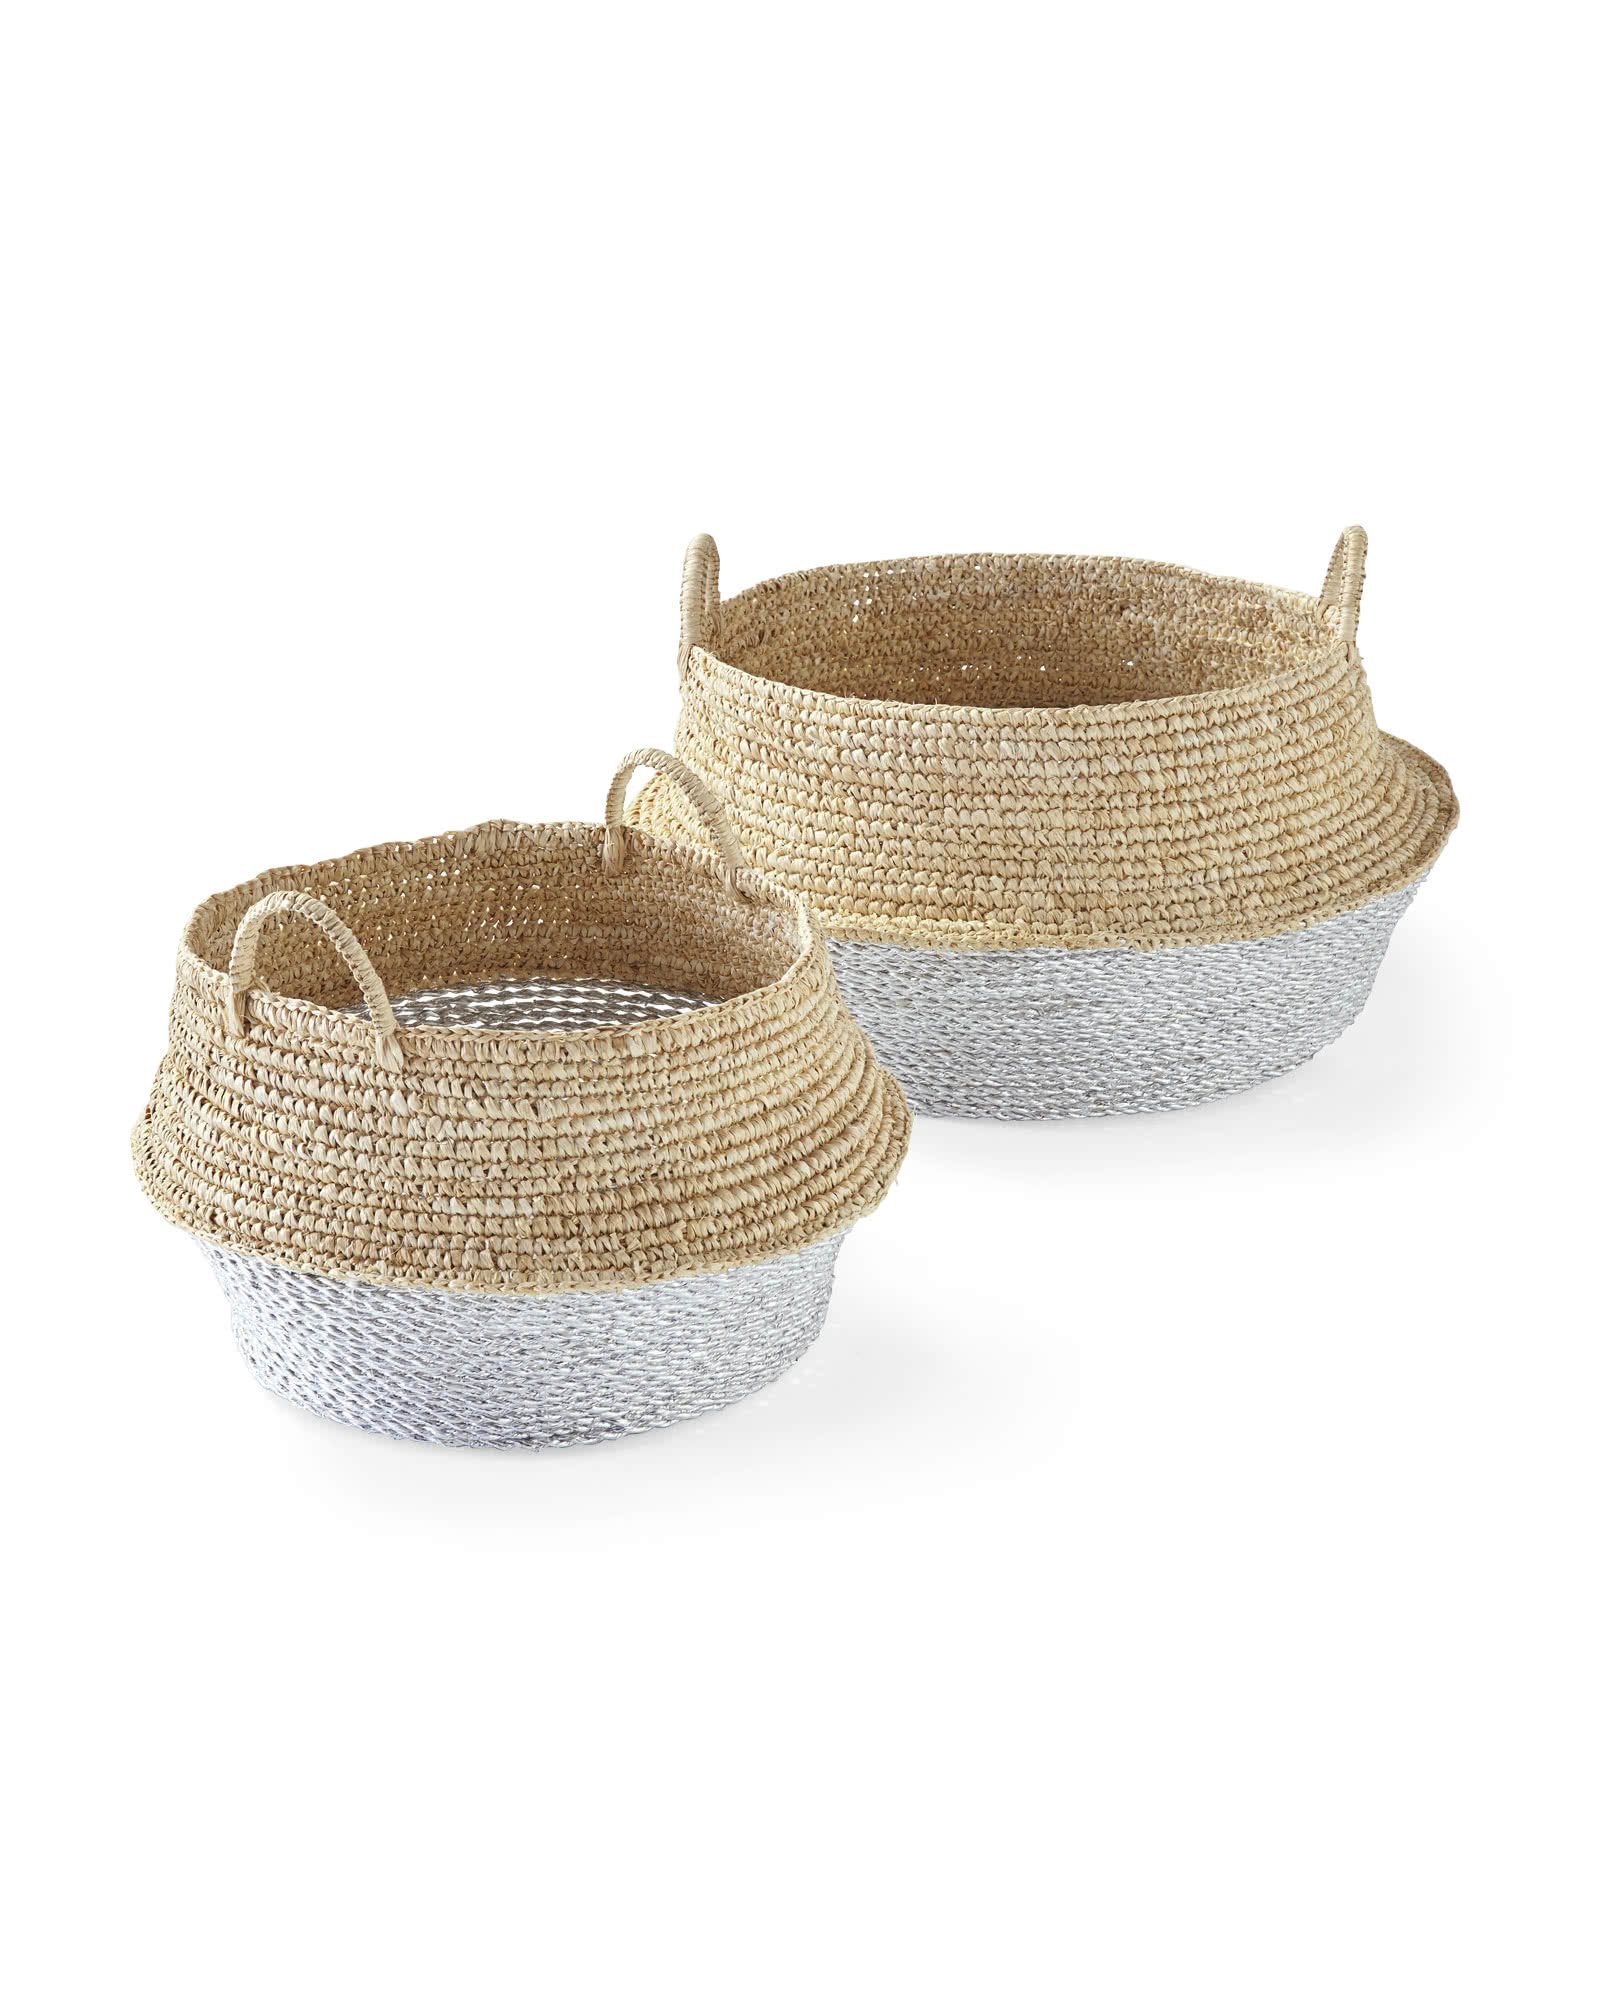 Round Belly Baskets (Set of 2)